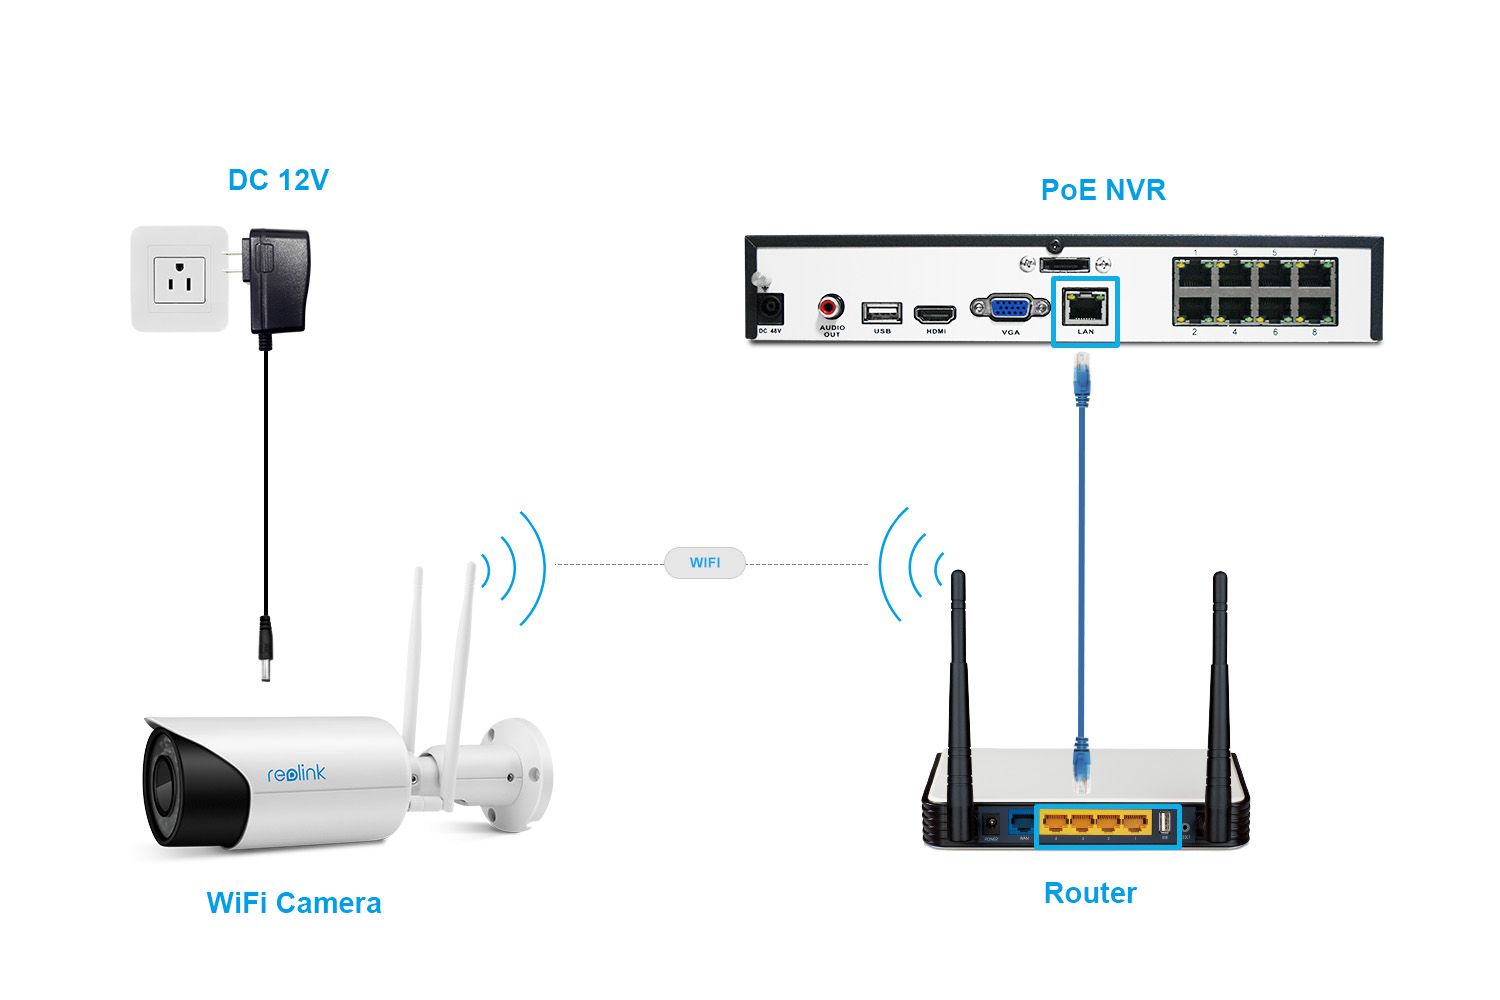 How To Add Reolink Ip Cameras To Reolink Poe Nvr - Nvr Faqs